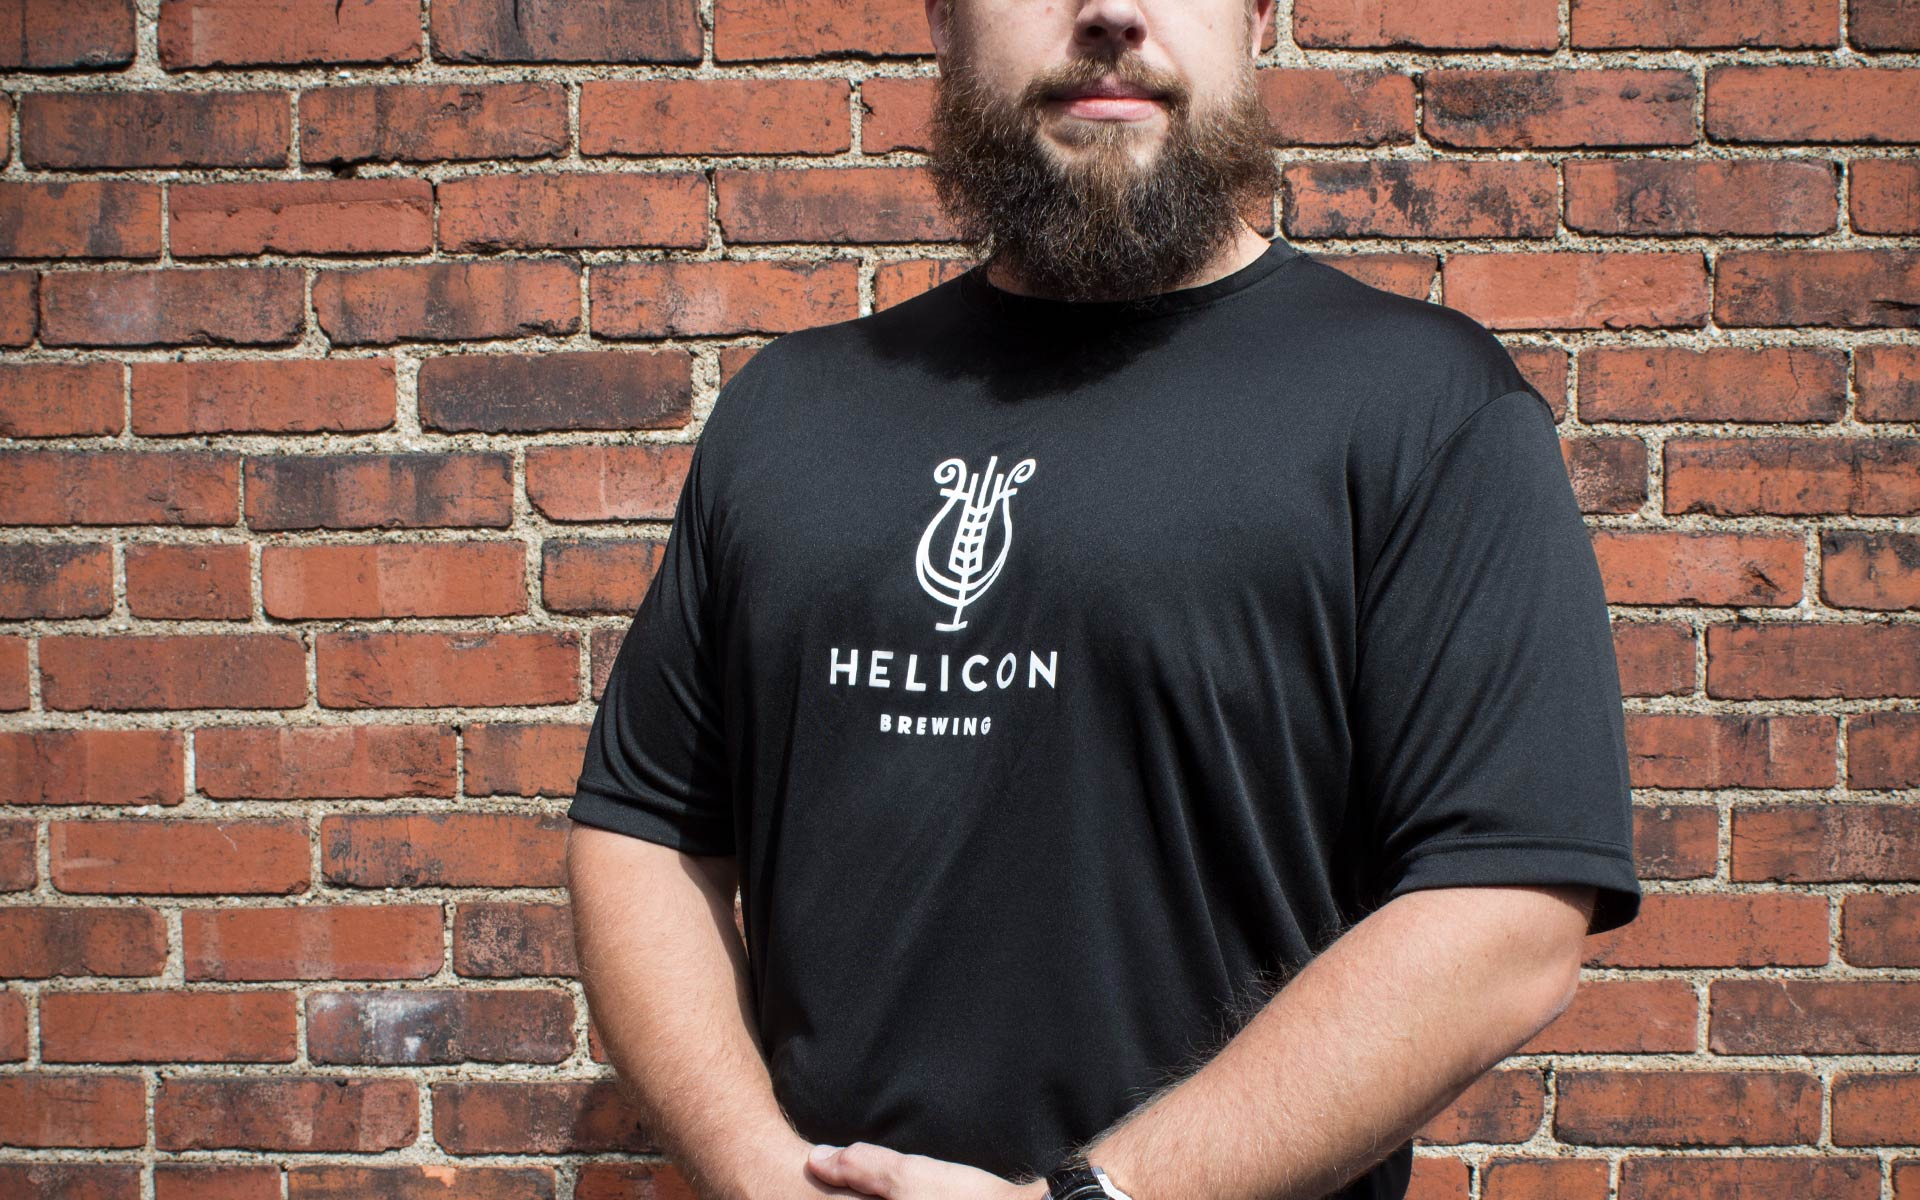 Helicon shirt